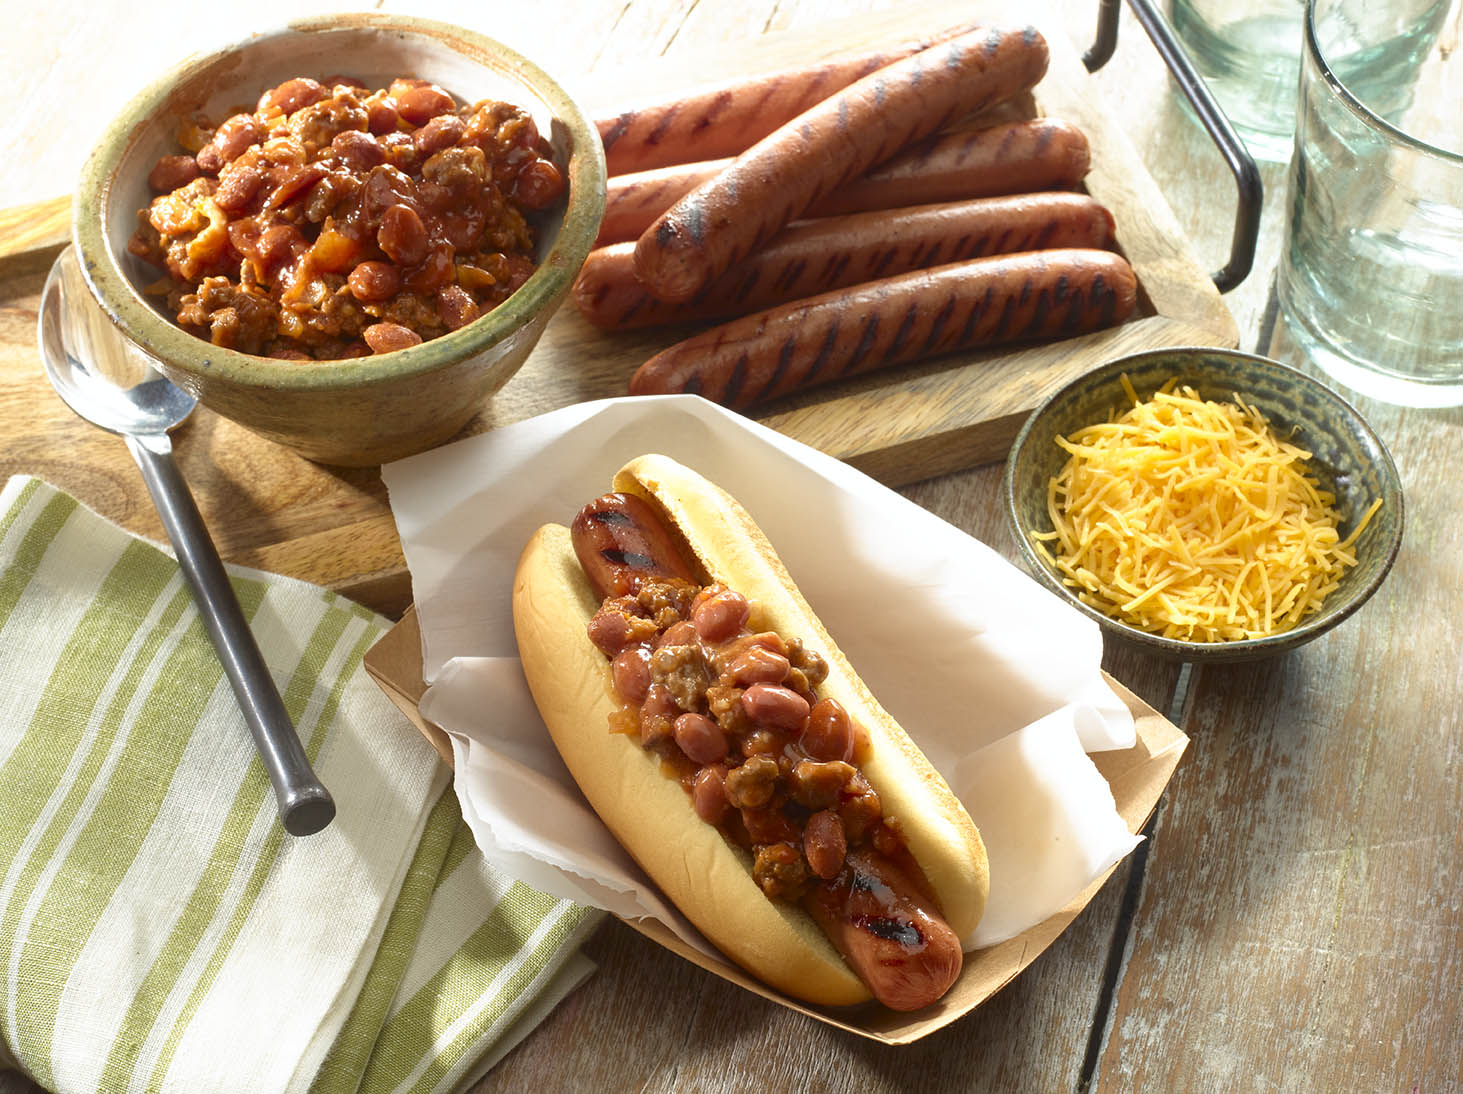 Hot Dogs con Chili